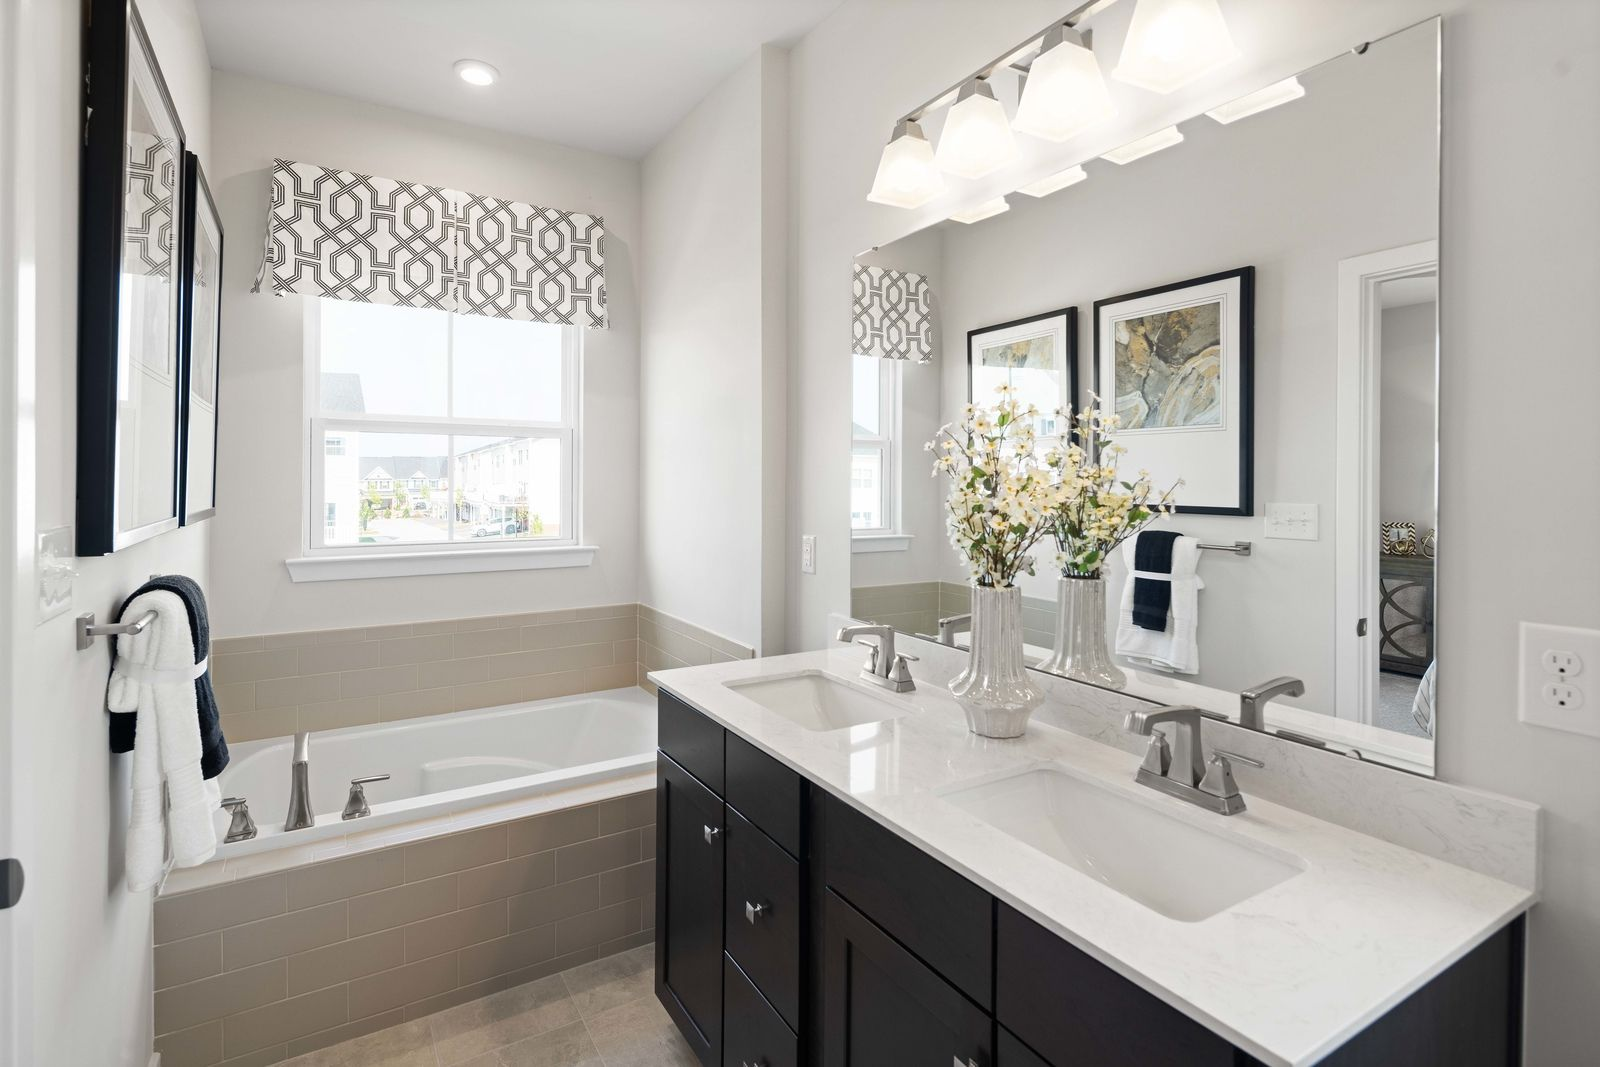 Bathroom featured in the Strauss 2-Car Garage By Ryan Homes in Baltimore, MD